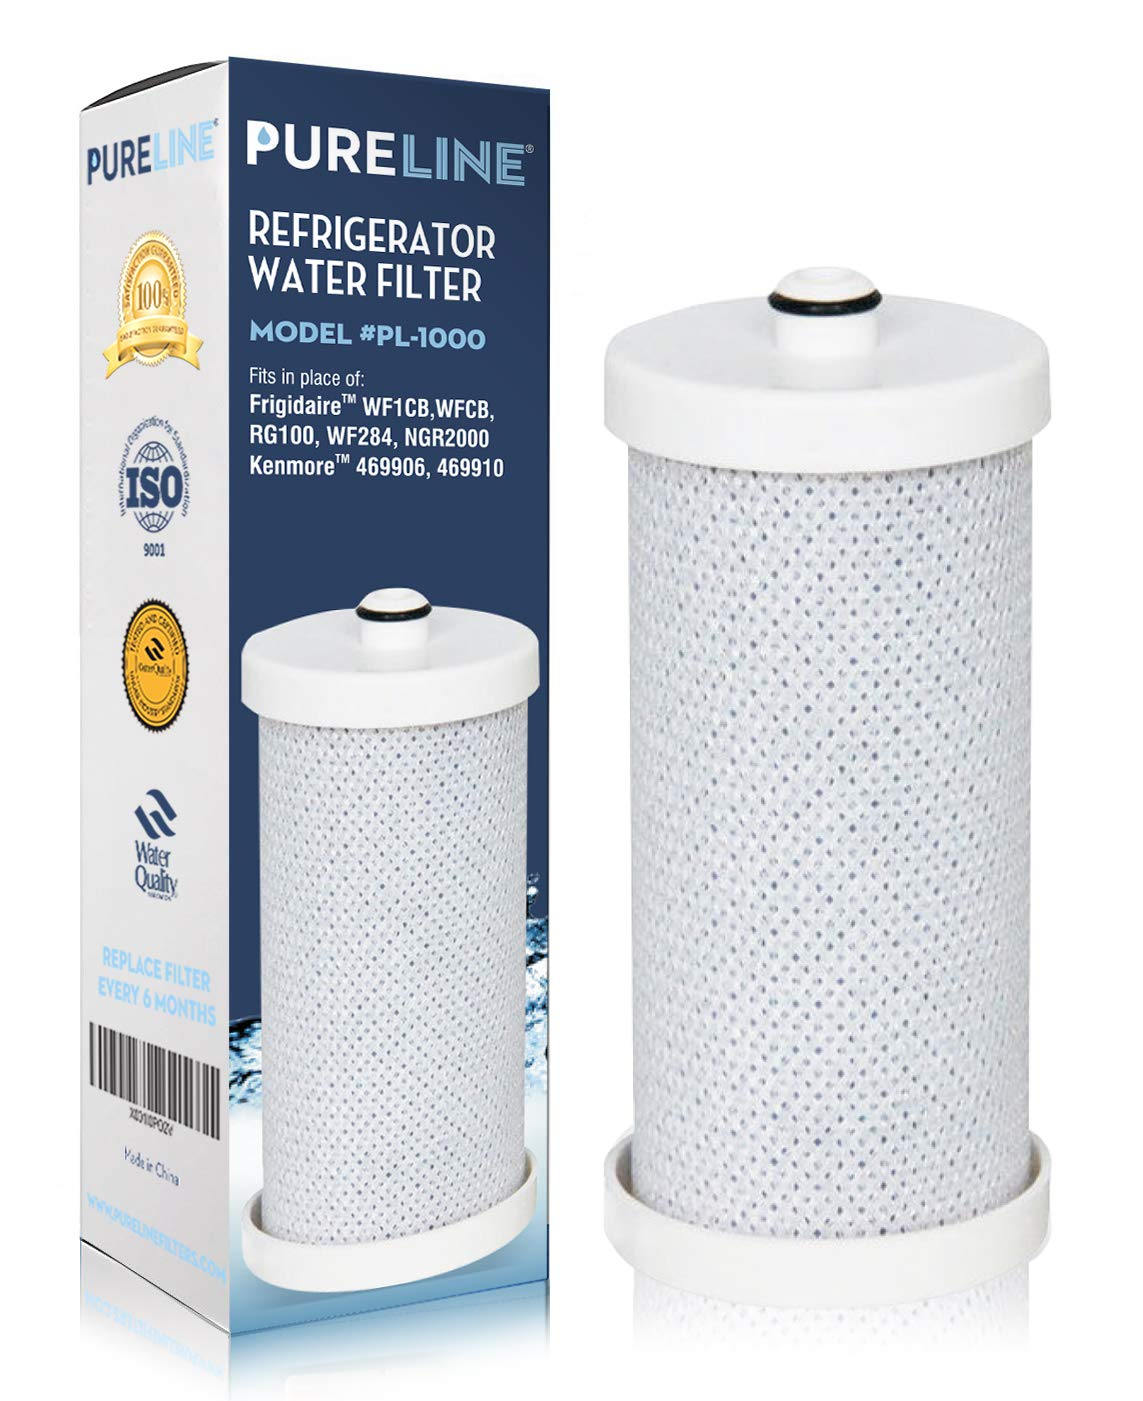 Frigidaire WF1CB, NGRG2000, Compatible Replacement Water Filter, Also Compatible With RF100, RG100, RF-100, RG-100, NGRG-2000 and Kenmore 9910, 469910, 46-9910 Refrigerator Water Filter (1 Pack)